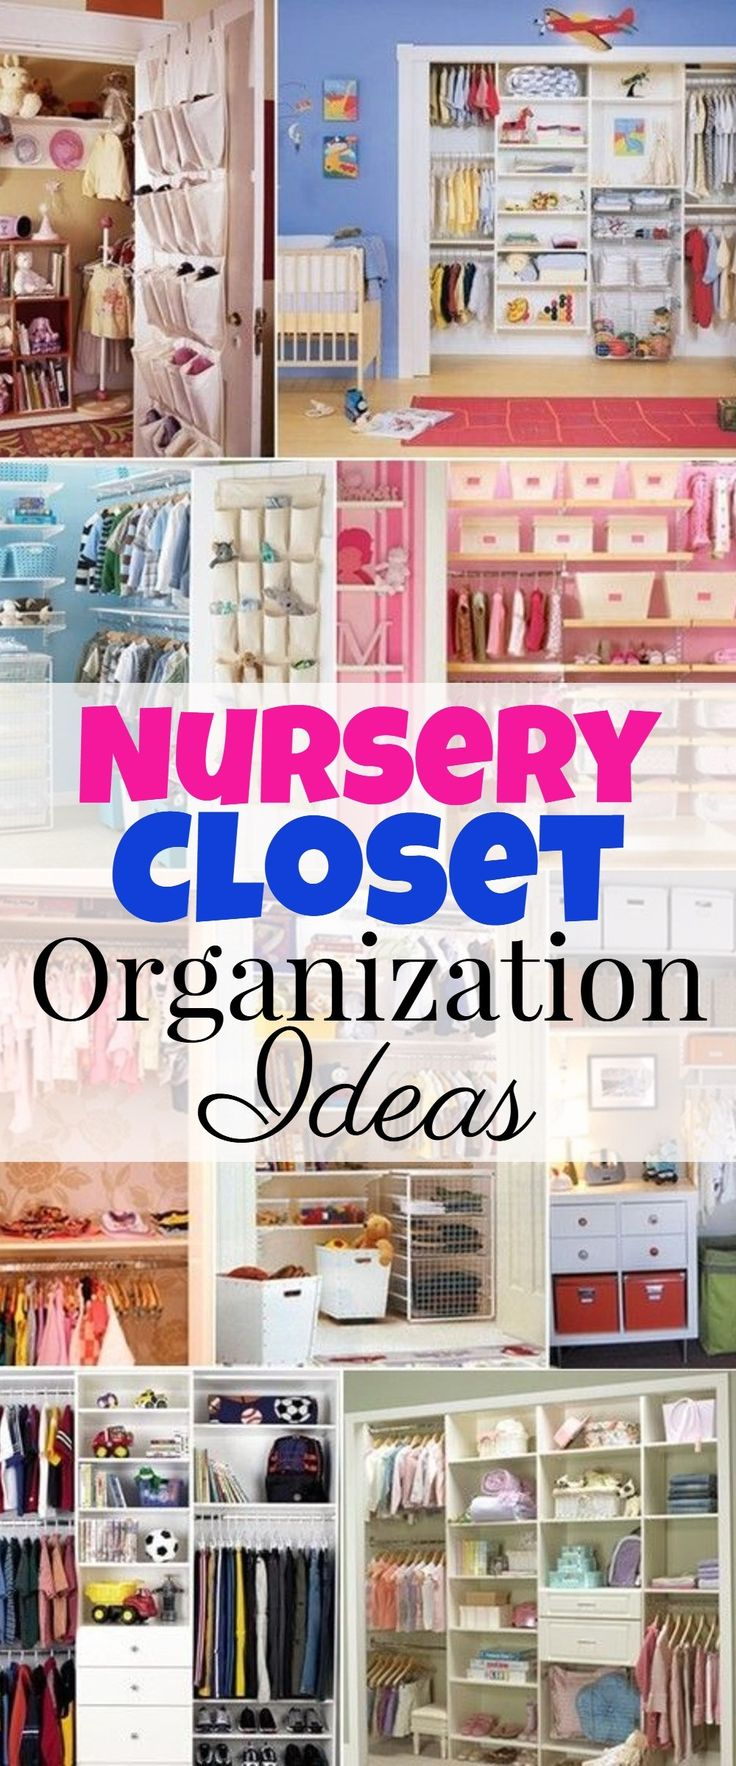 17 best images about nursery organization ideas organizing tips and diy hacks on pinterest - Baby room organization tips ...